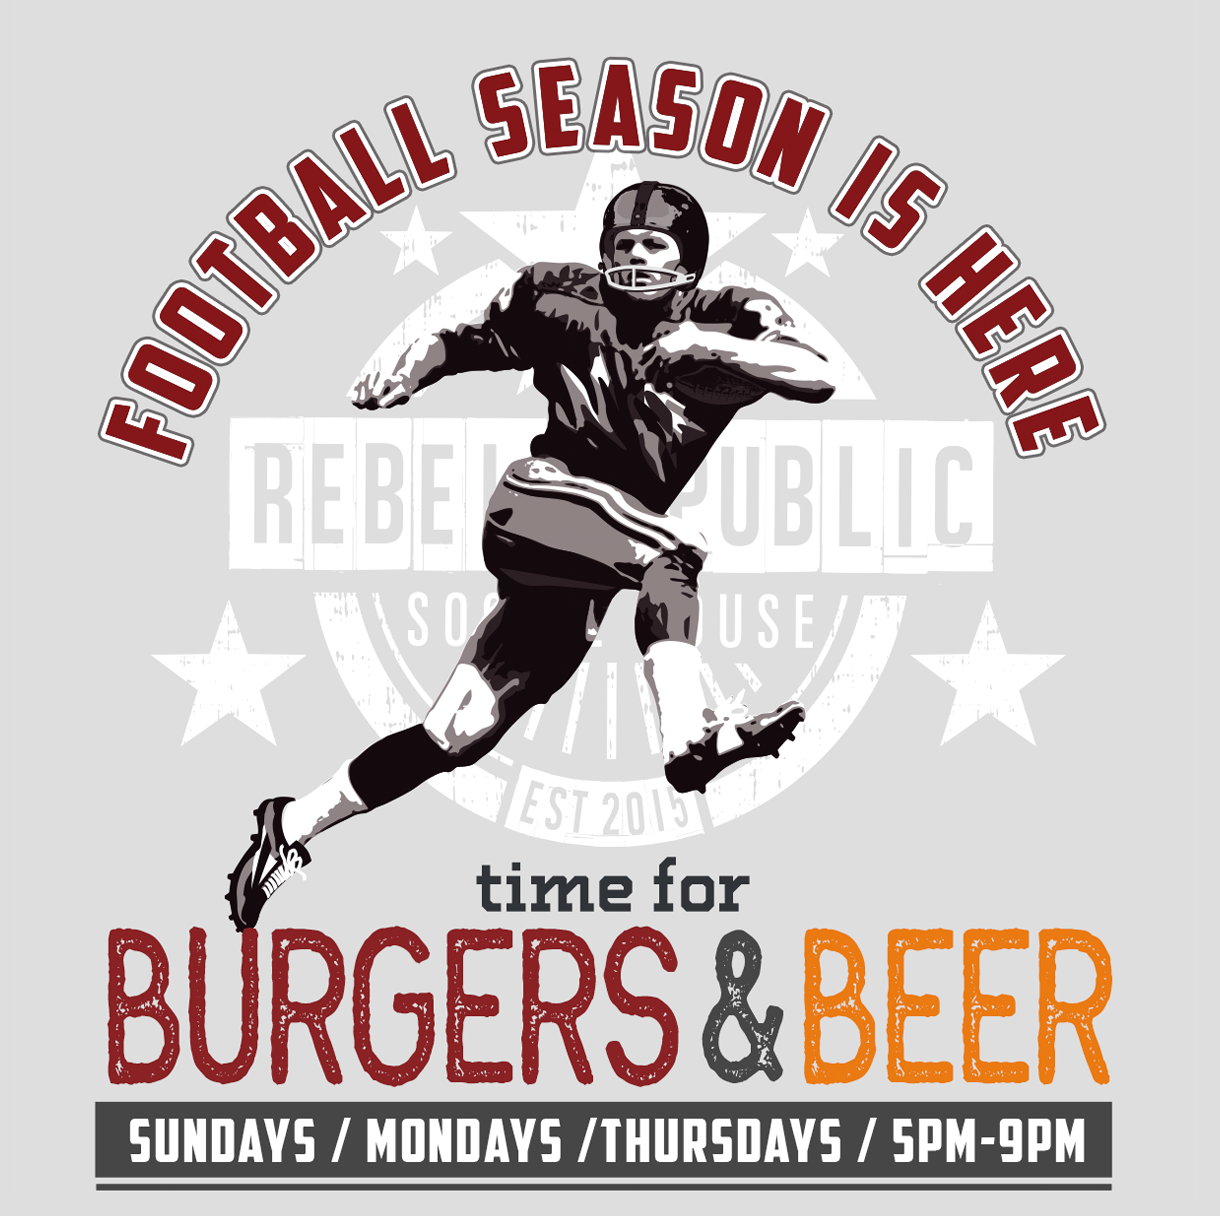 FOOTBALL SEASON IS HERE... TIME FOR BURGERS & BEER - Sundays | Mondays | Thursdays | 5pm-9pmLittle Rebel Burger - $8House Burger - $8All Beer Pints - $5Wings - $5Rebel Makers Discount = A Shot of Old Grand-Dad & Milwaukee's Best